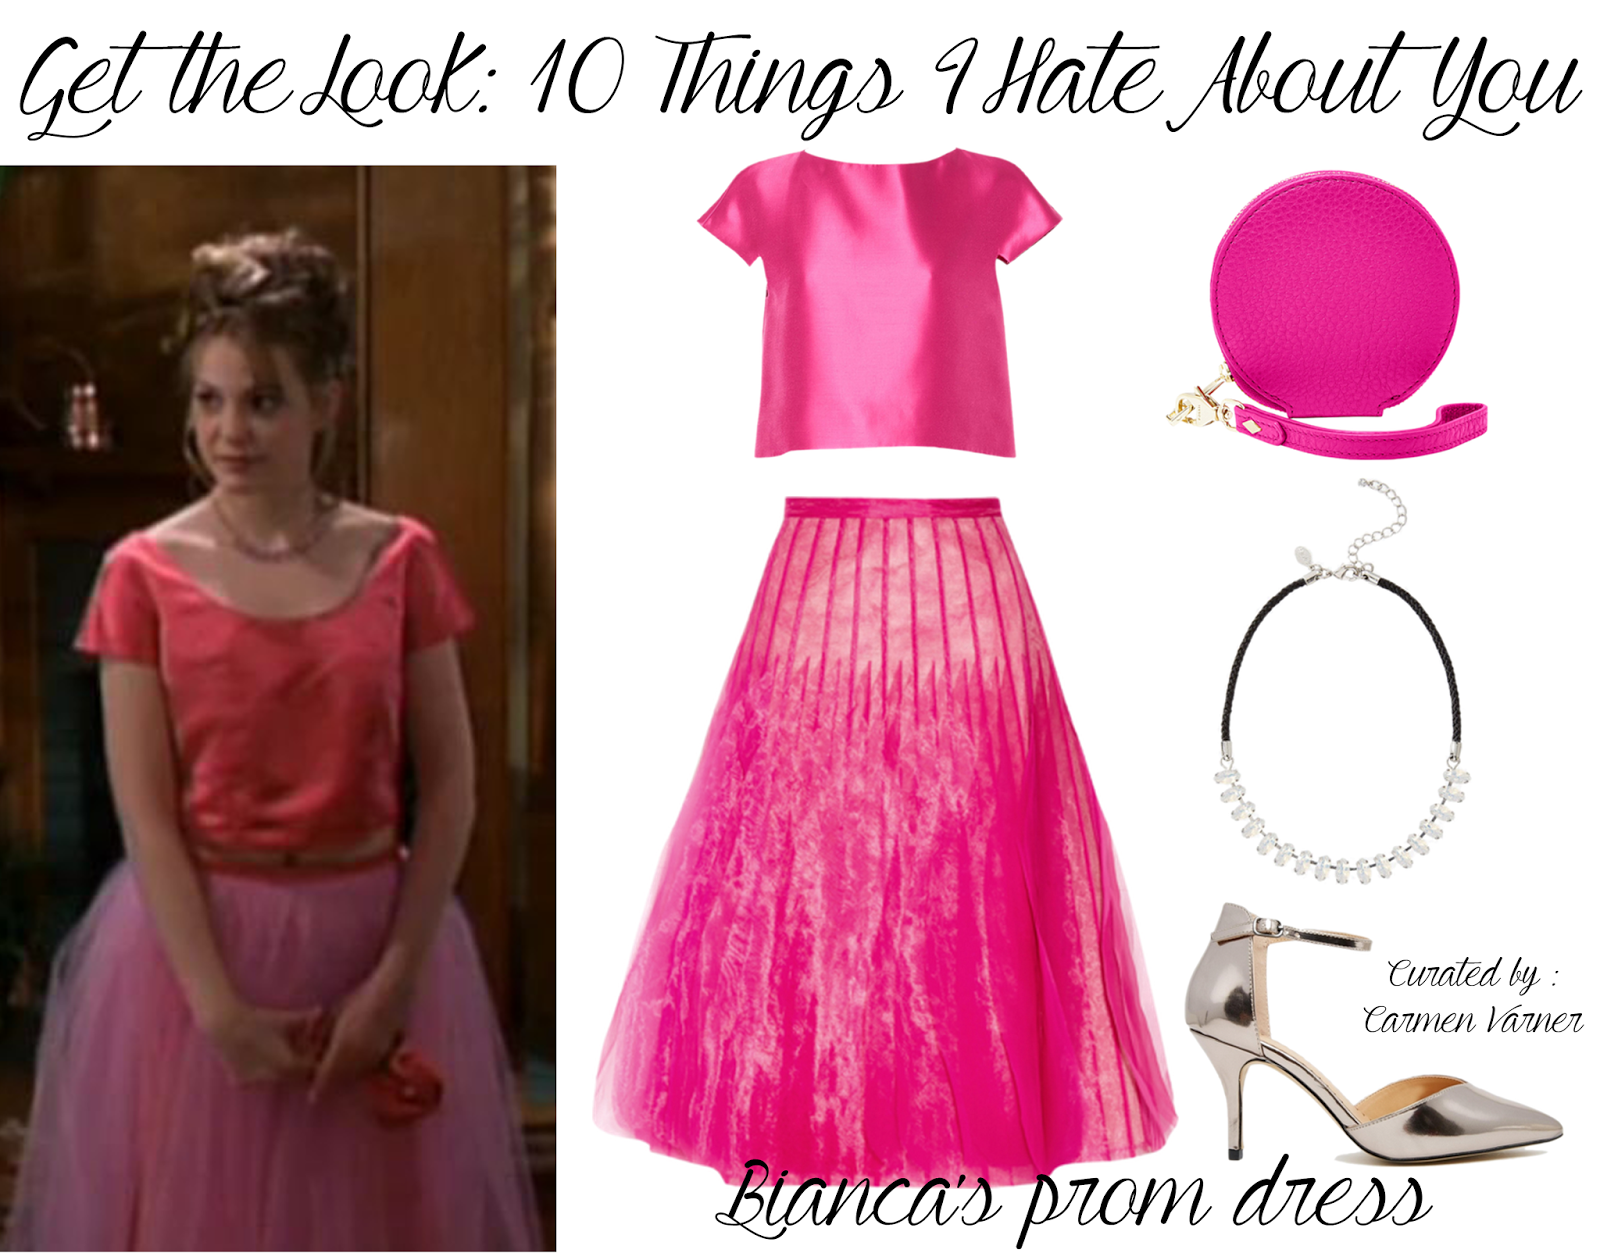 Get The Look Biancas Prom Dress From 10 Things I Hate About You In